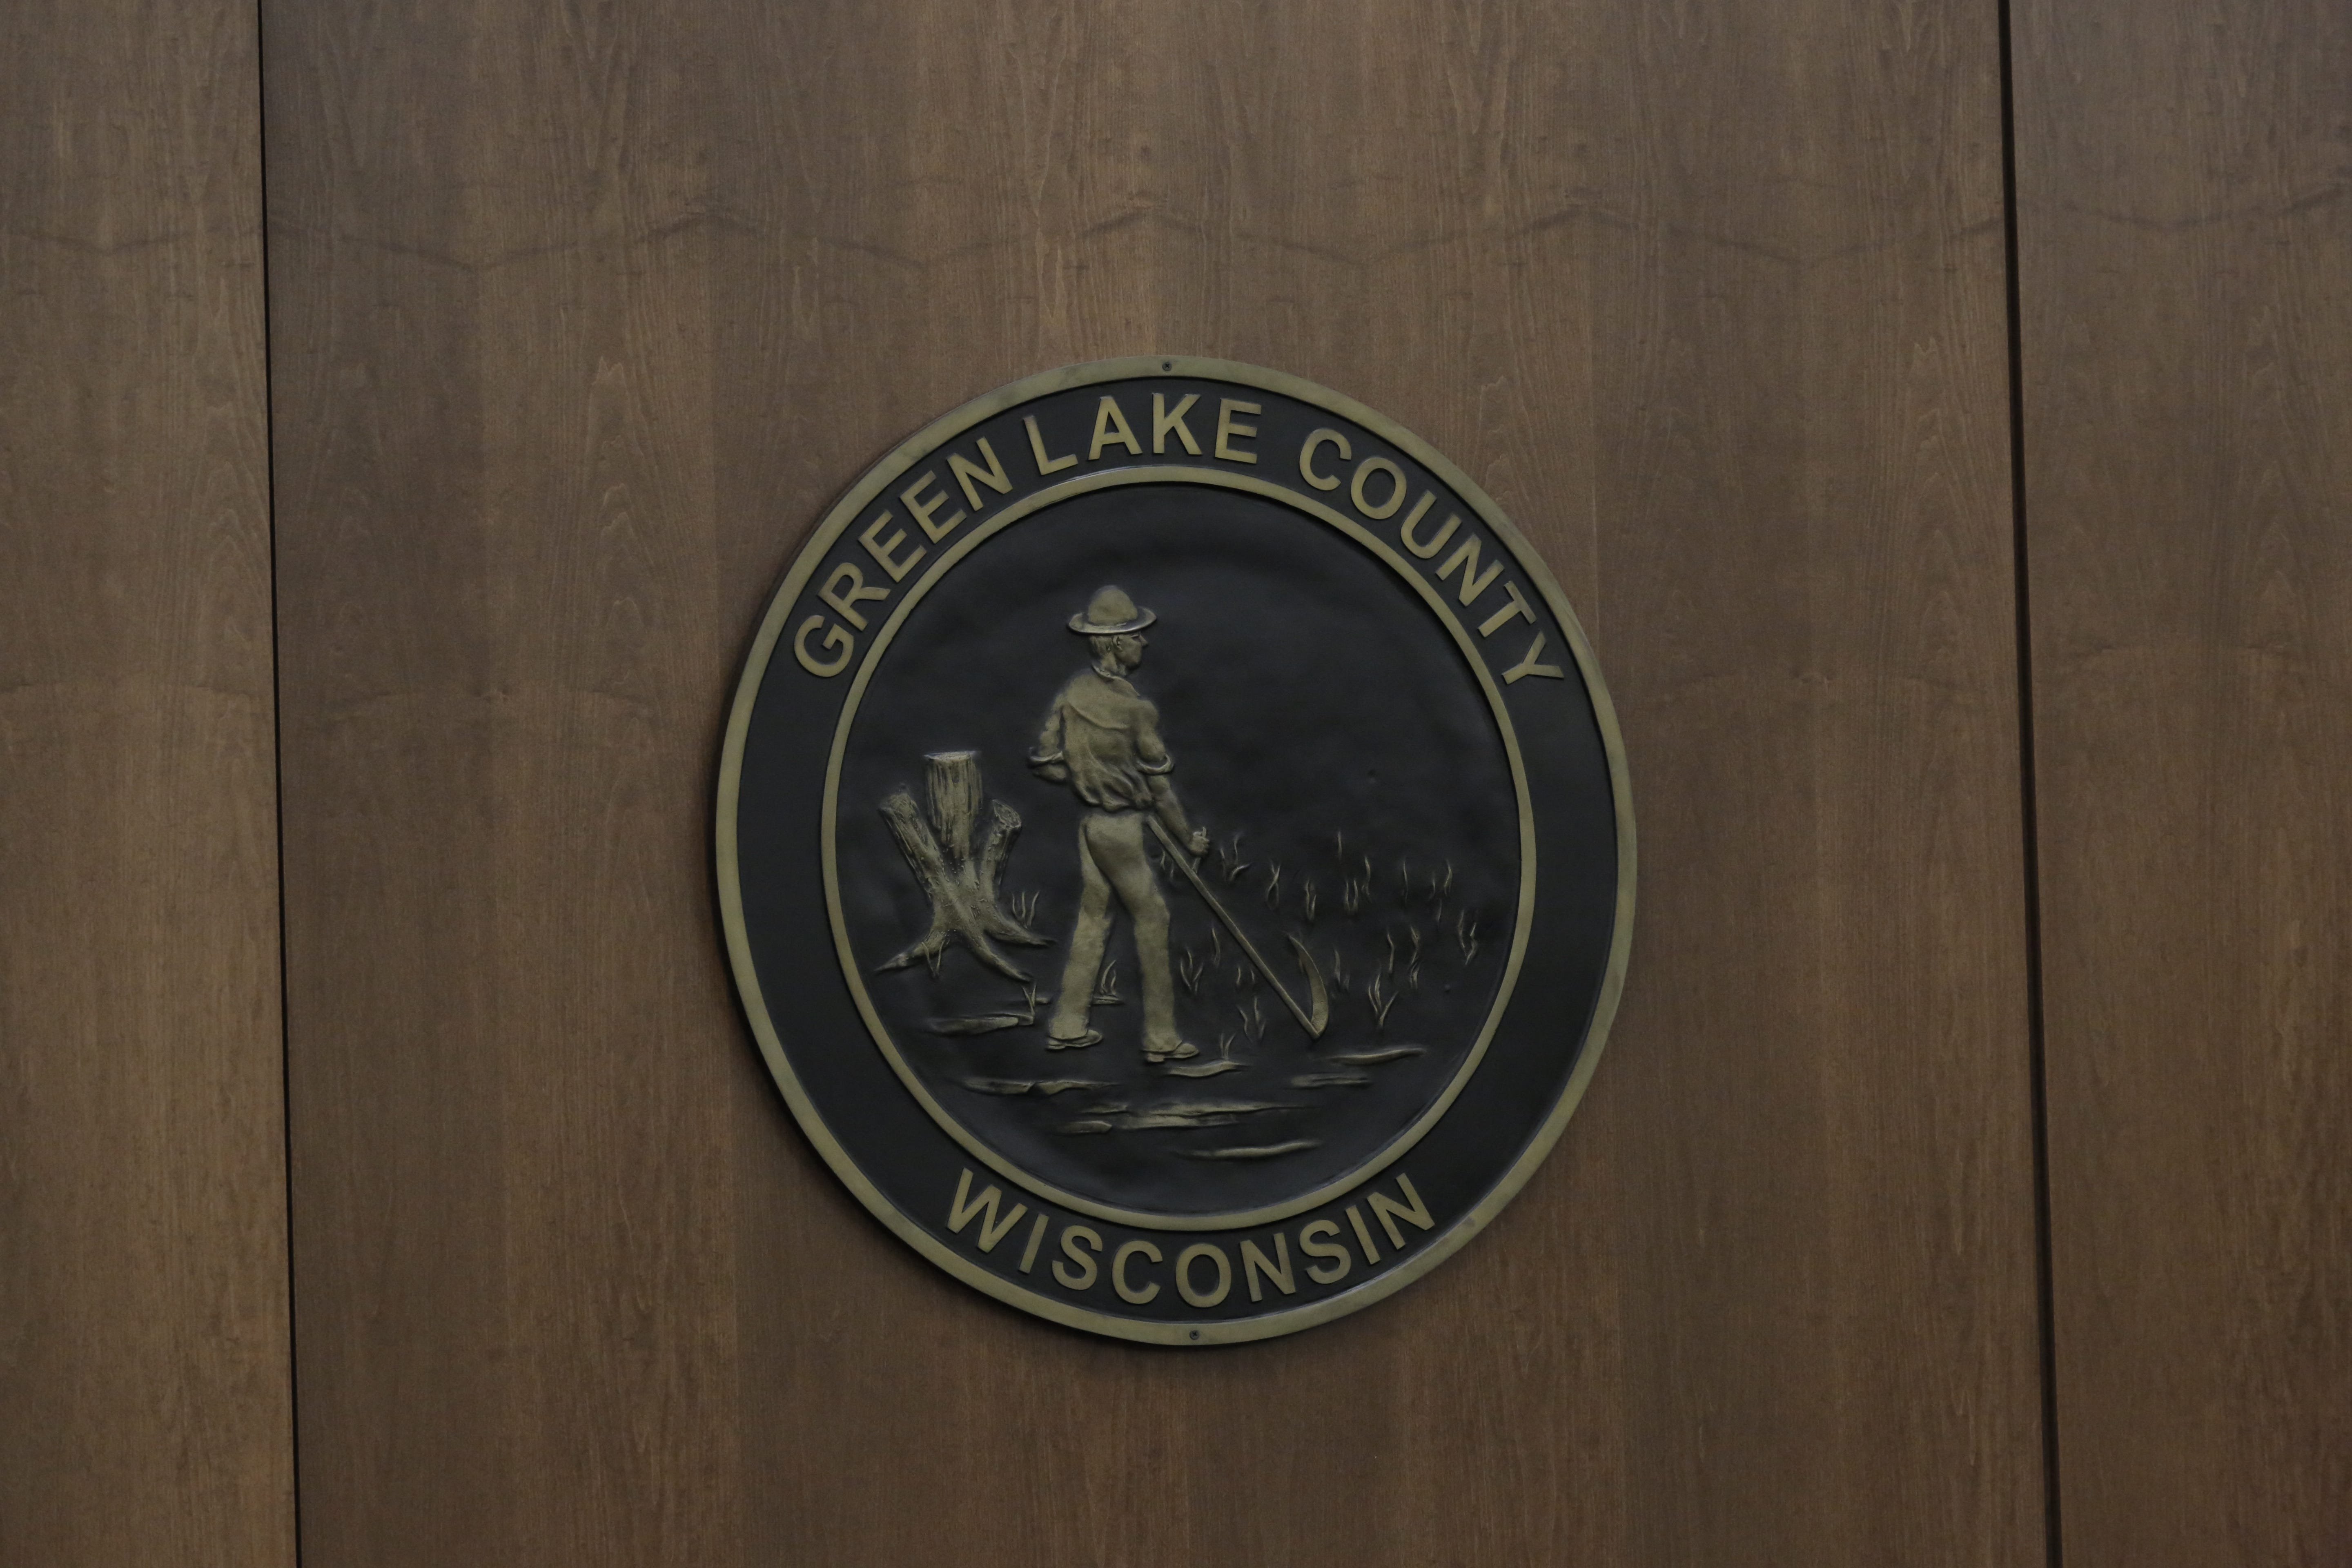 Green Lake man flown to hospital with life-threatening injuries after Saturday weapons call Image